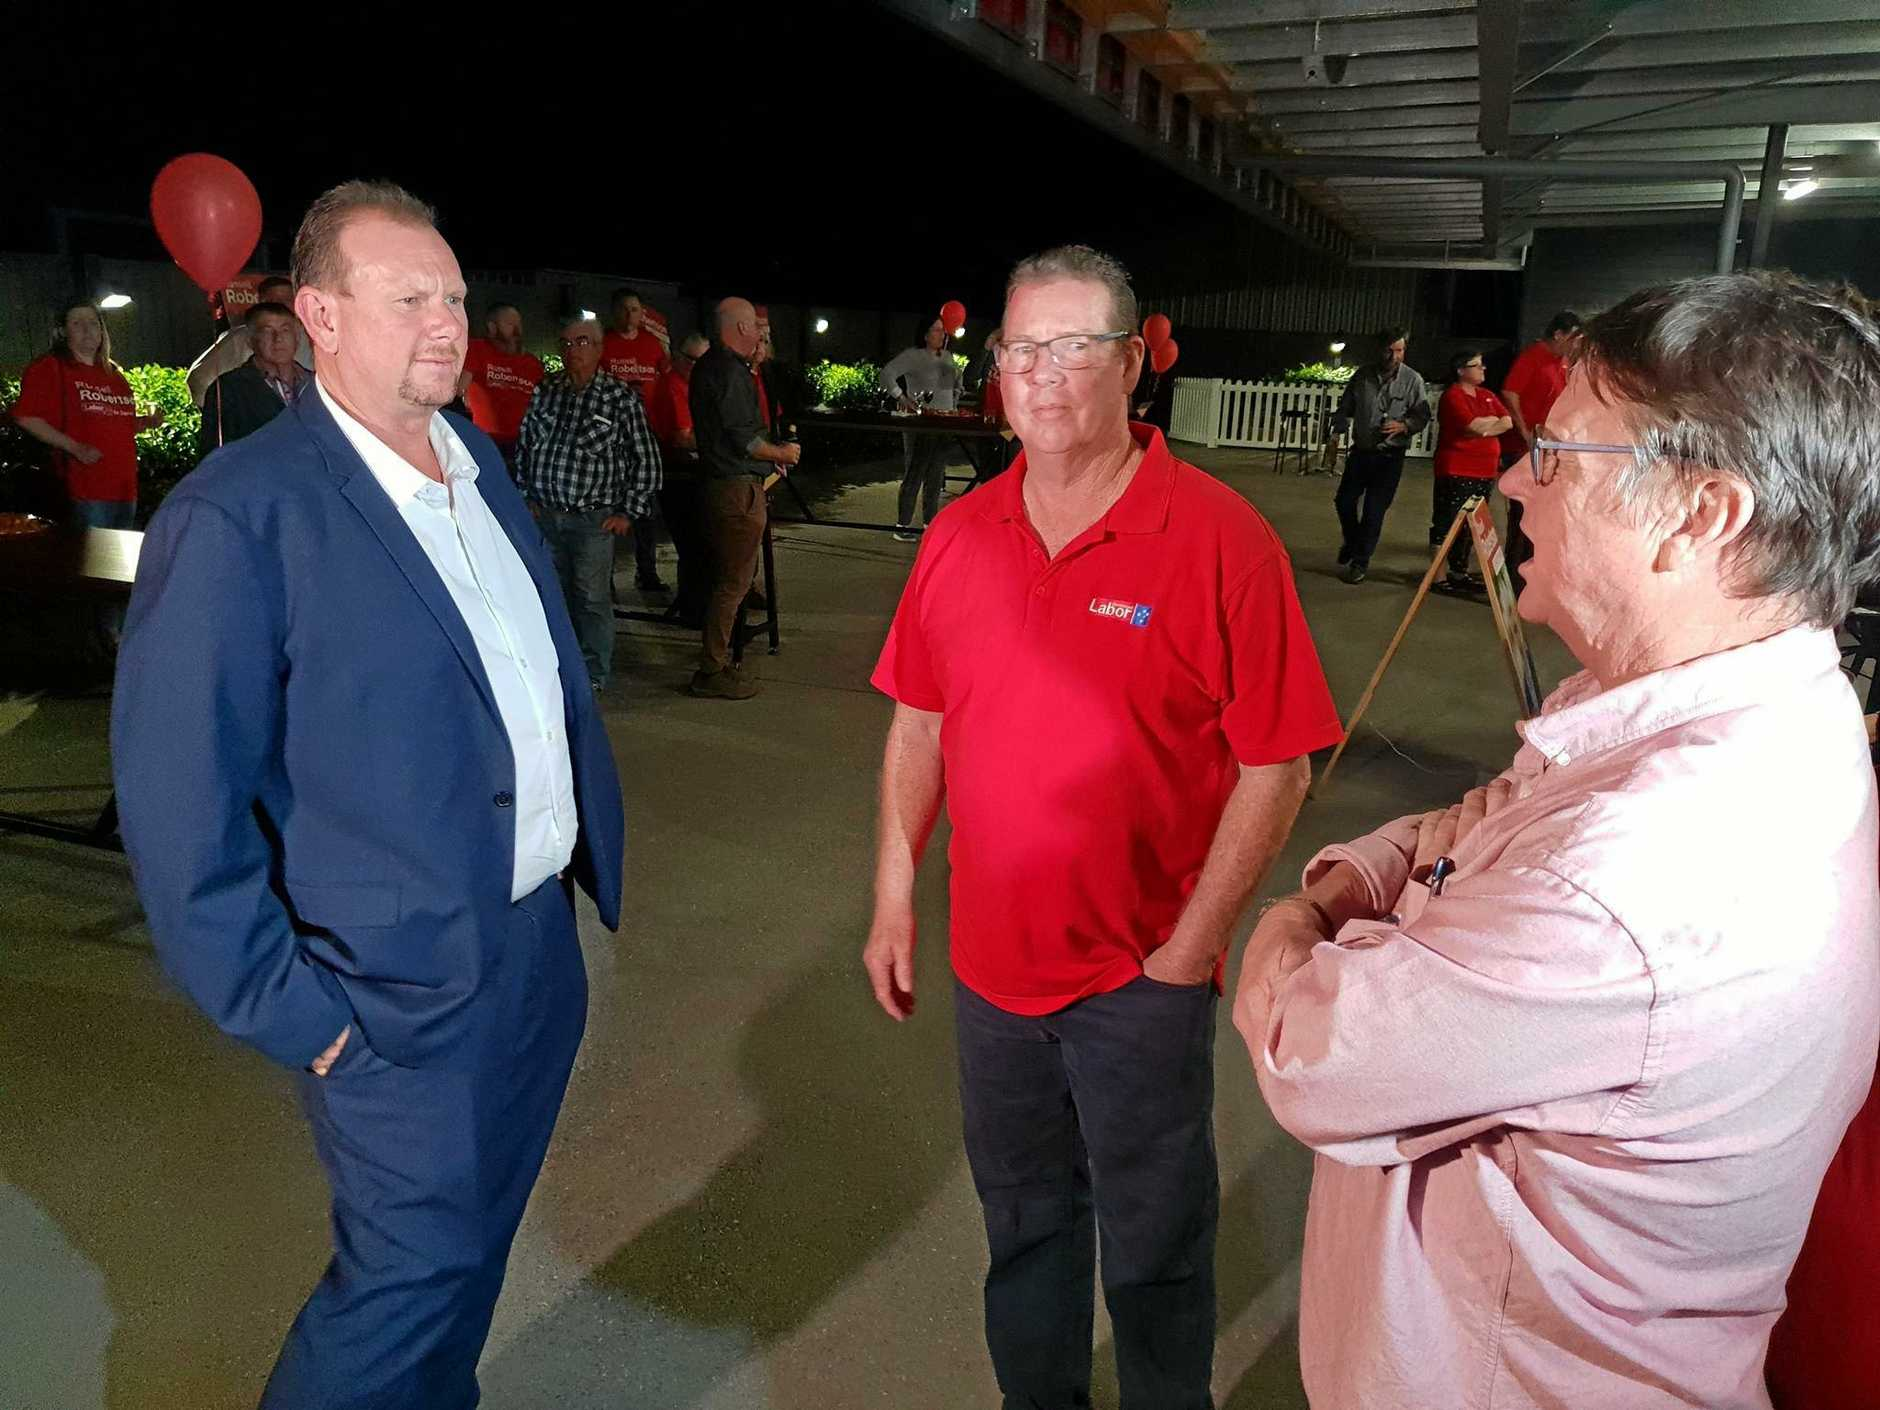 LABOR HEARTBREAK: Labor's candidate for Capricornia Russell Robertson commiserated with Labor's Rockhampton MP Barry O'Rourke and former MP Robert Schwarten.